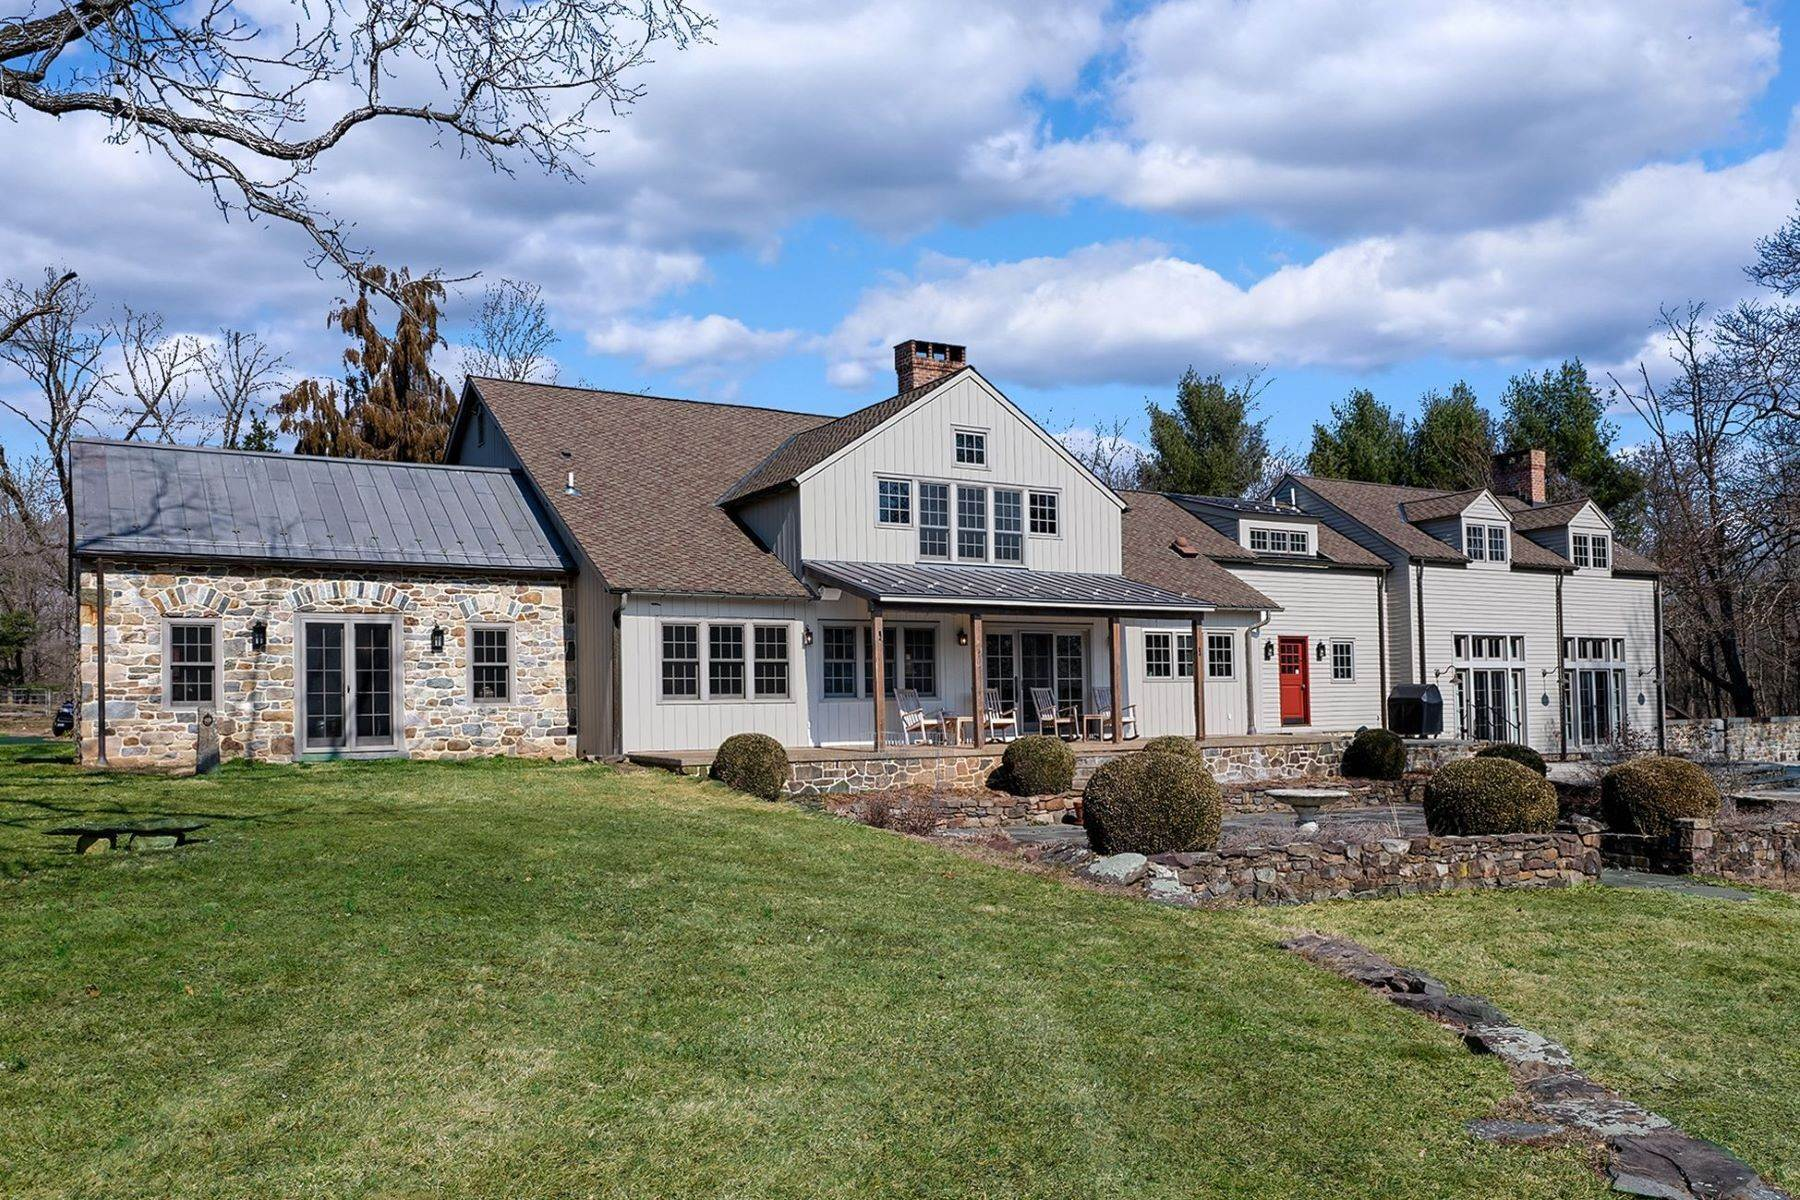 Farm and Ranch Properties for Sale at Idyllic Historic Farm With Rich, Modern Finishes 111 East Prospect Street Hopewell, New Jersey 08525 United States